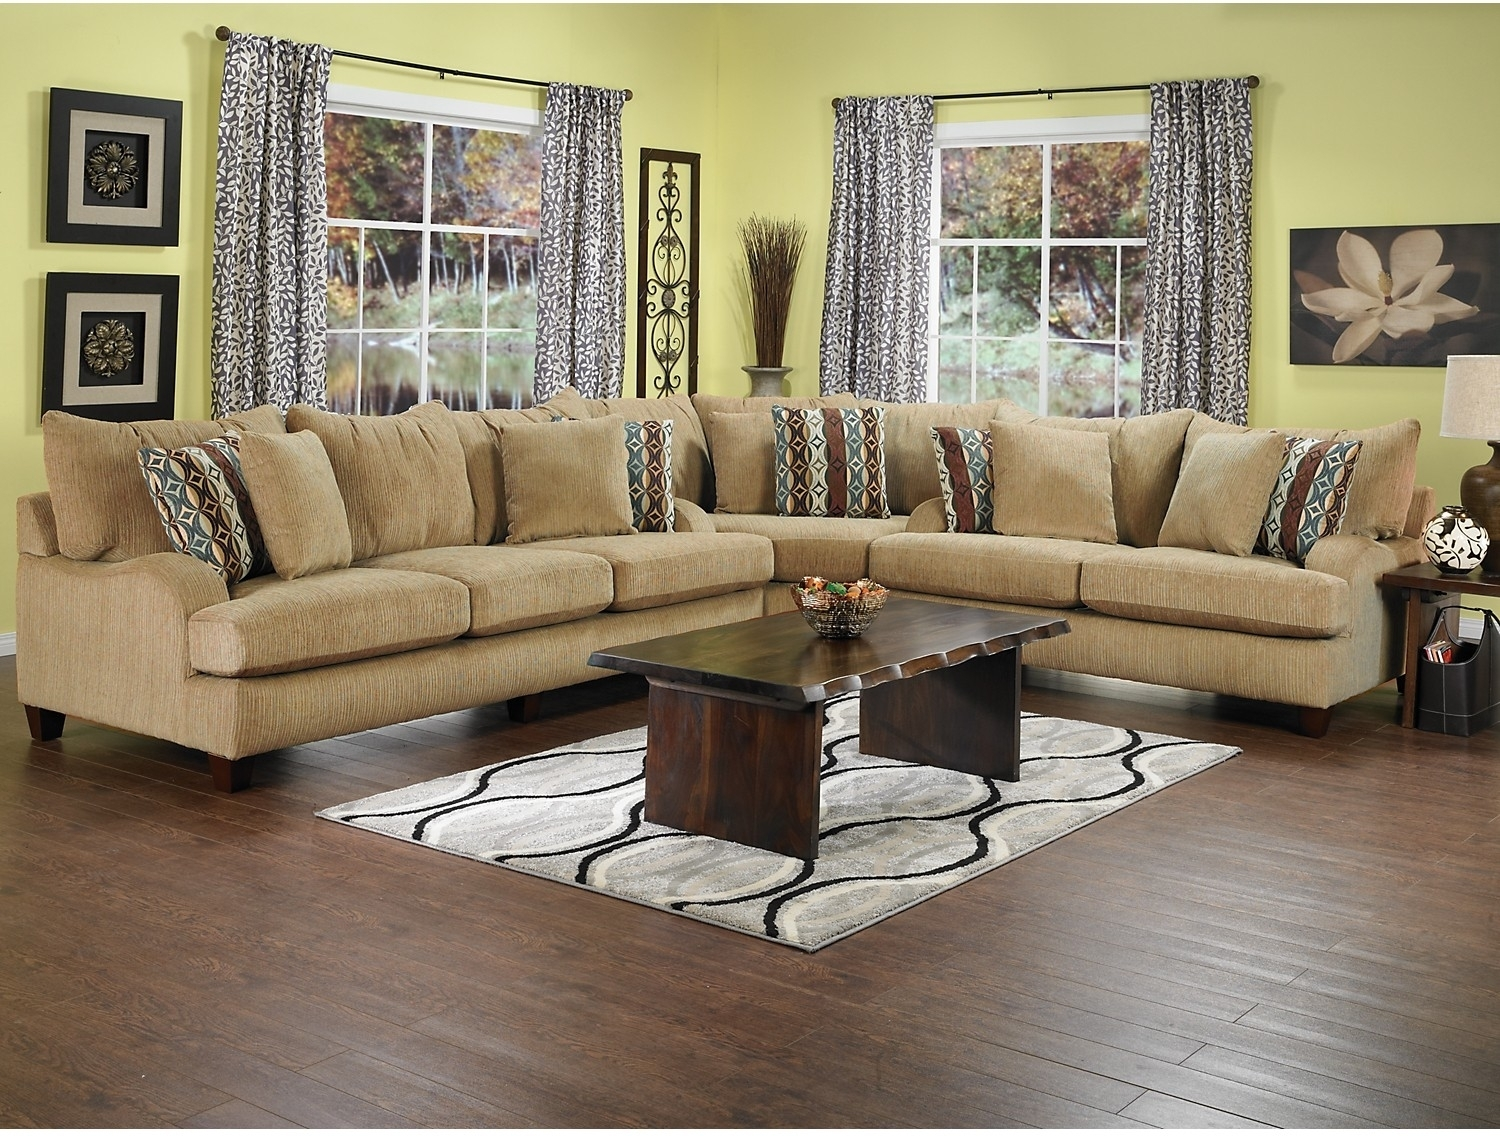 Inspiring The Brick Sectional Sofas 82 For Your Sectional Sofa Throughout The Brick Sectional Sofas (Image 5 of 10)